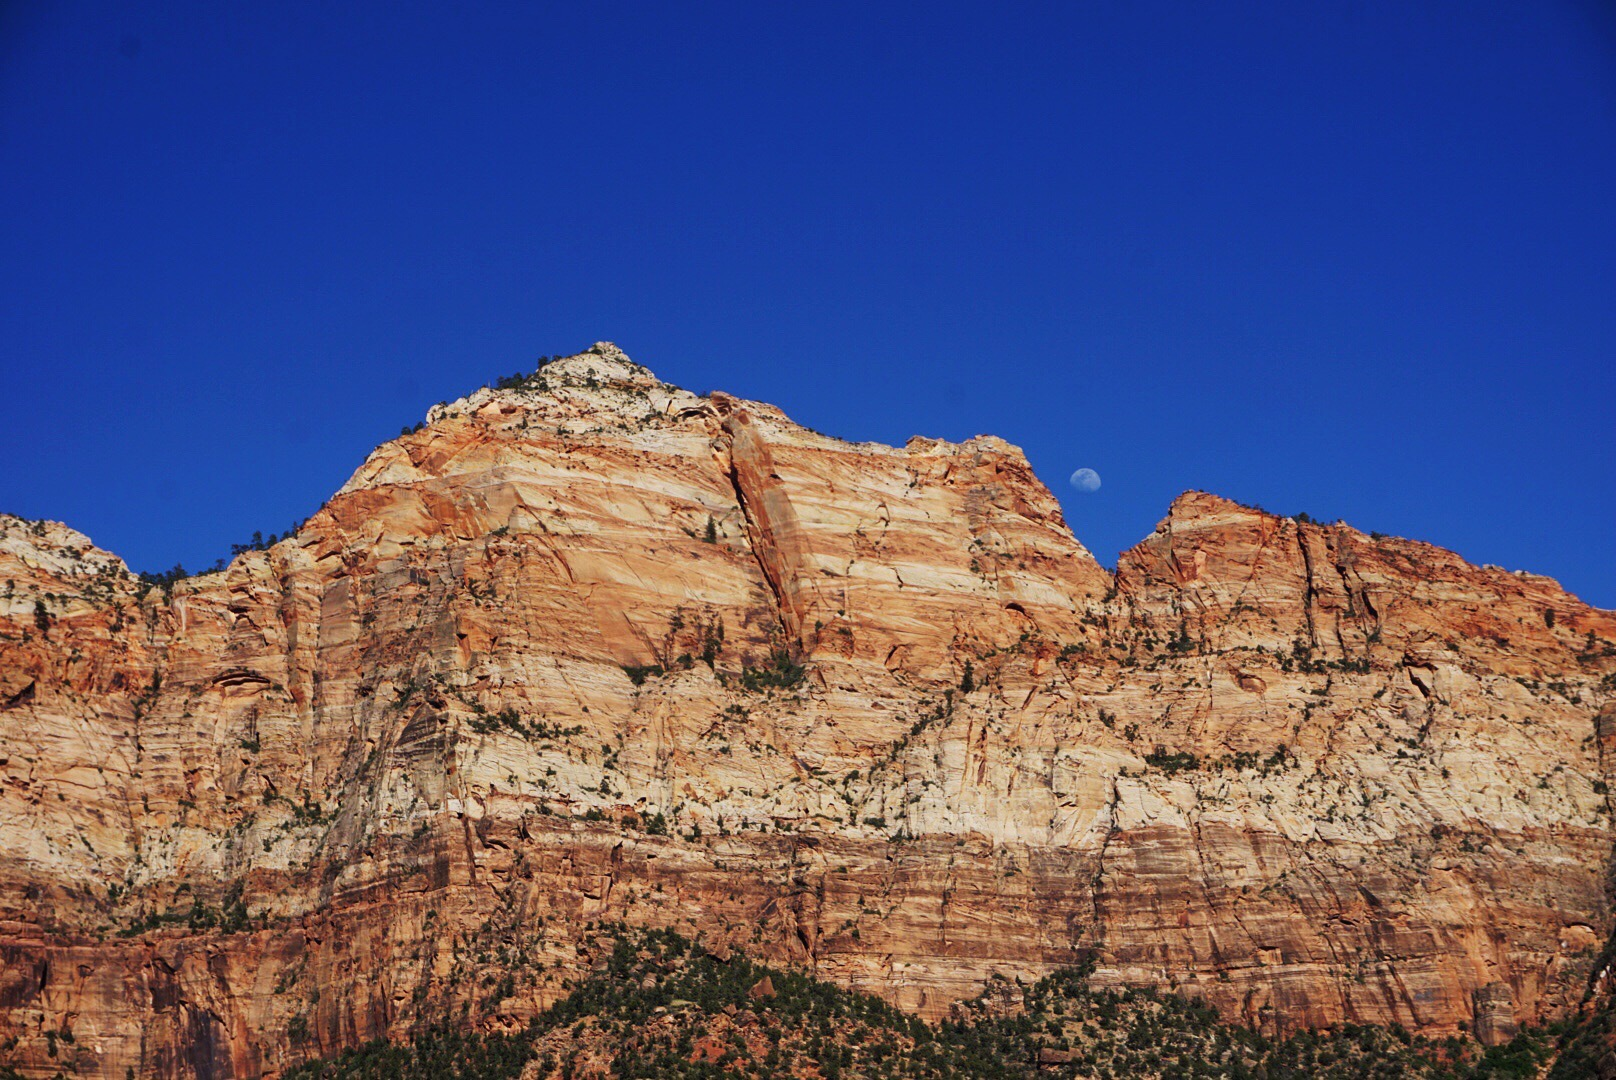 Moon Rising over Zion National Park, UT. Photo Credit: Taylor Luneau.